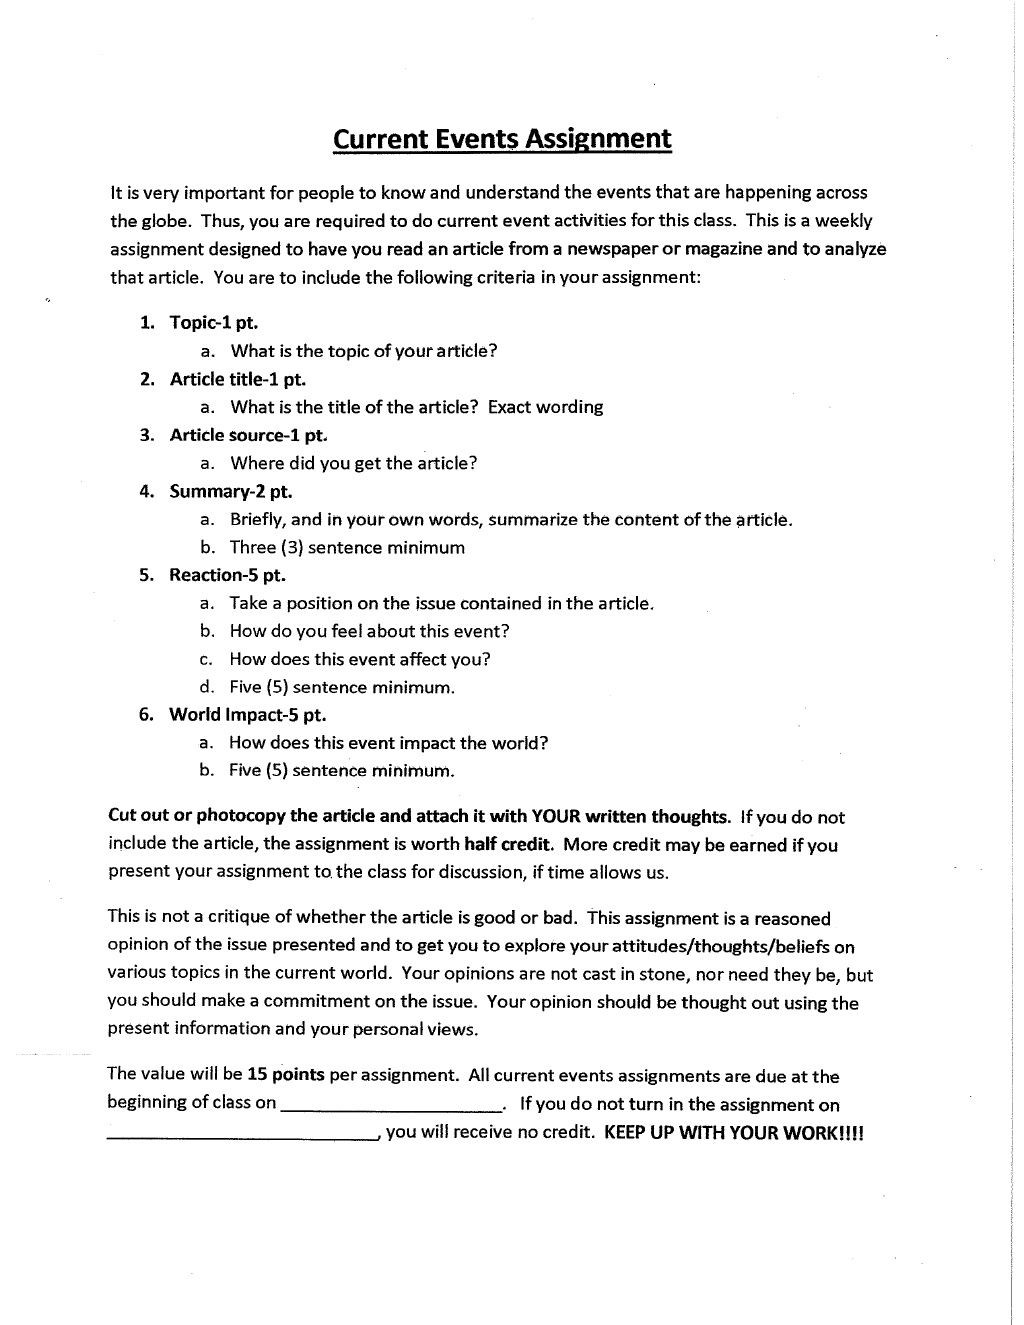 Written Document Analysis Worksheet Answers Current events assignment Rubric Presentation by Jaqcl Via